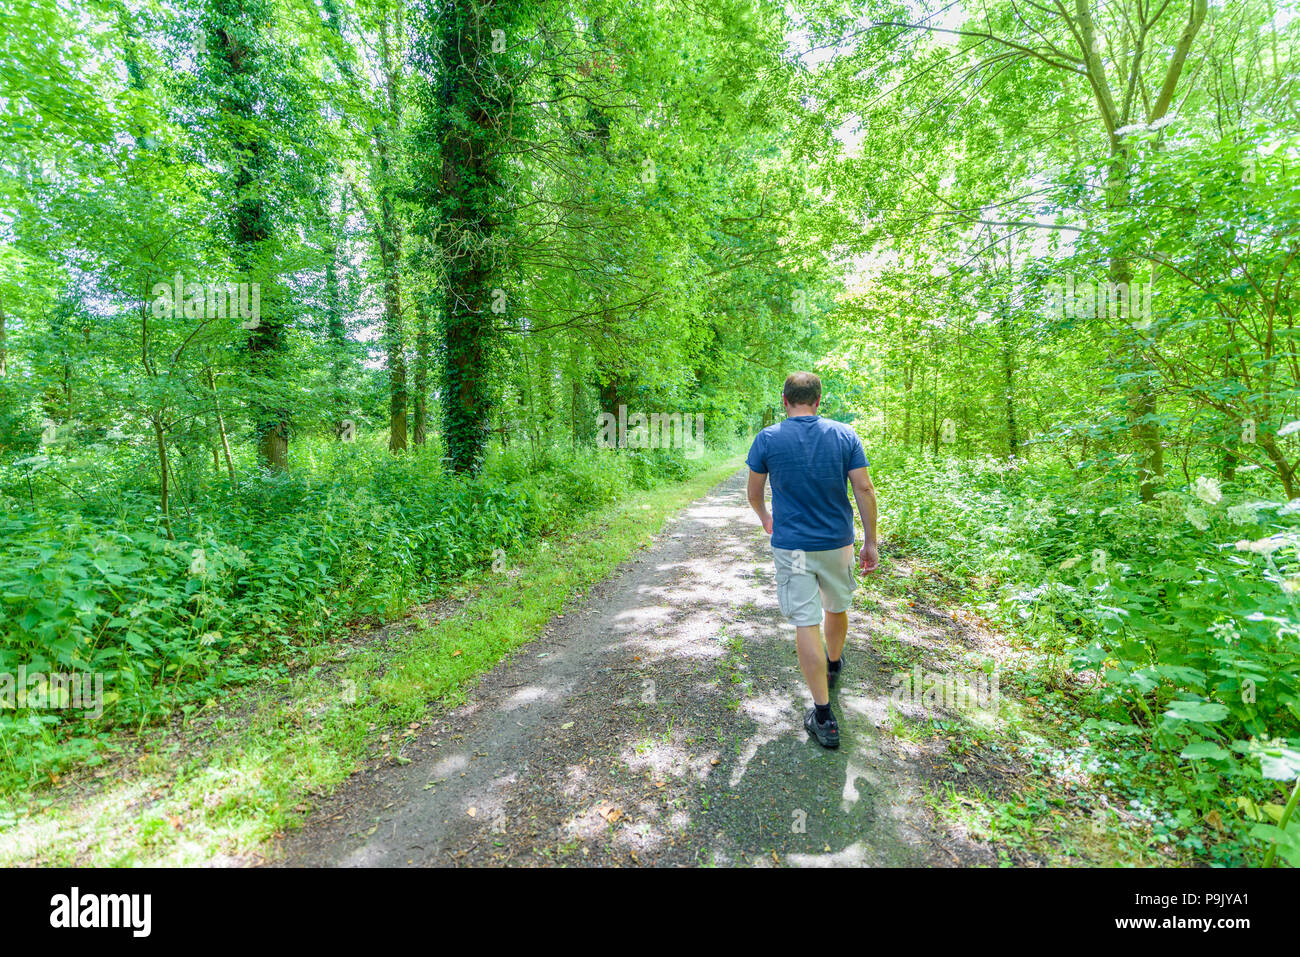 A man strides out on  a path in an english woodland on a sunny summer day. - Stock Image